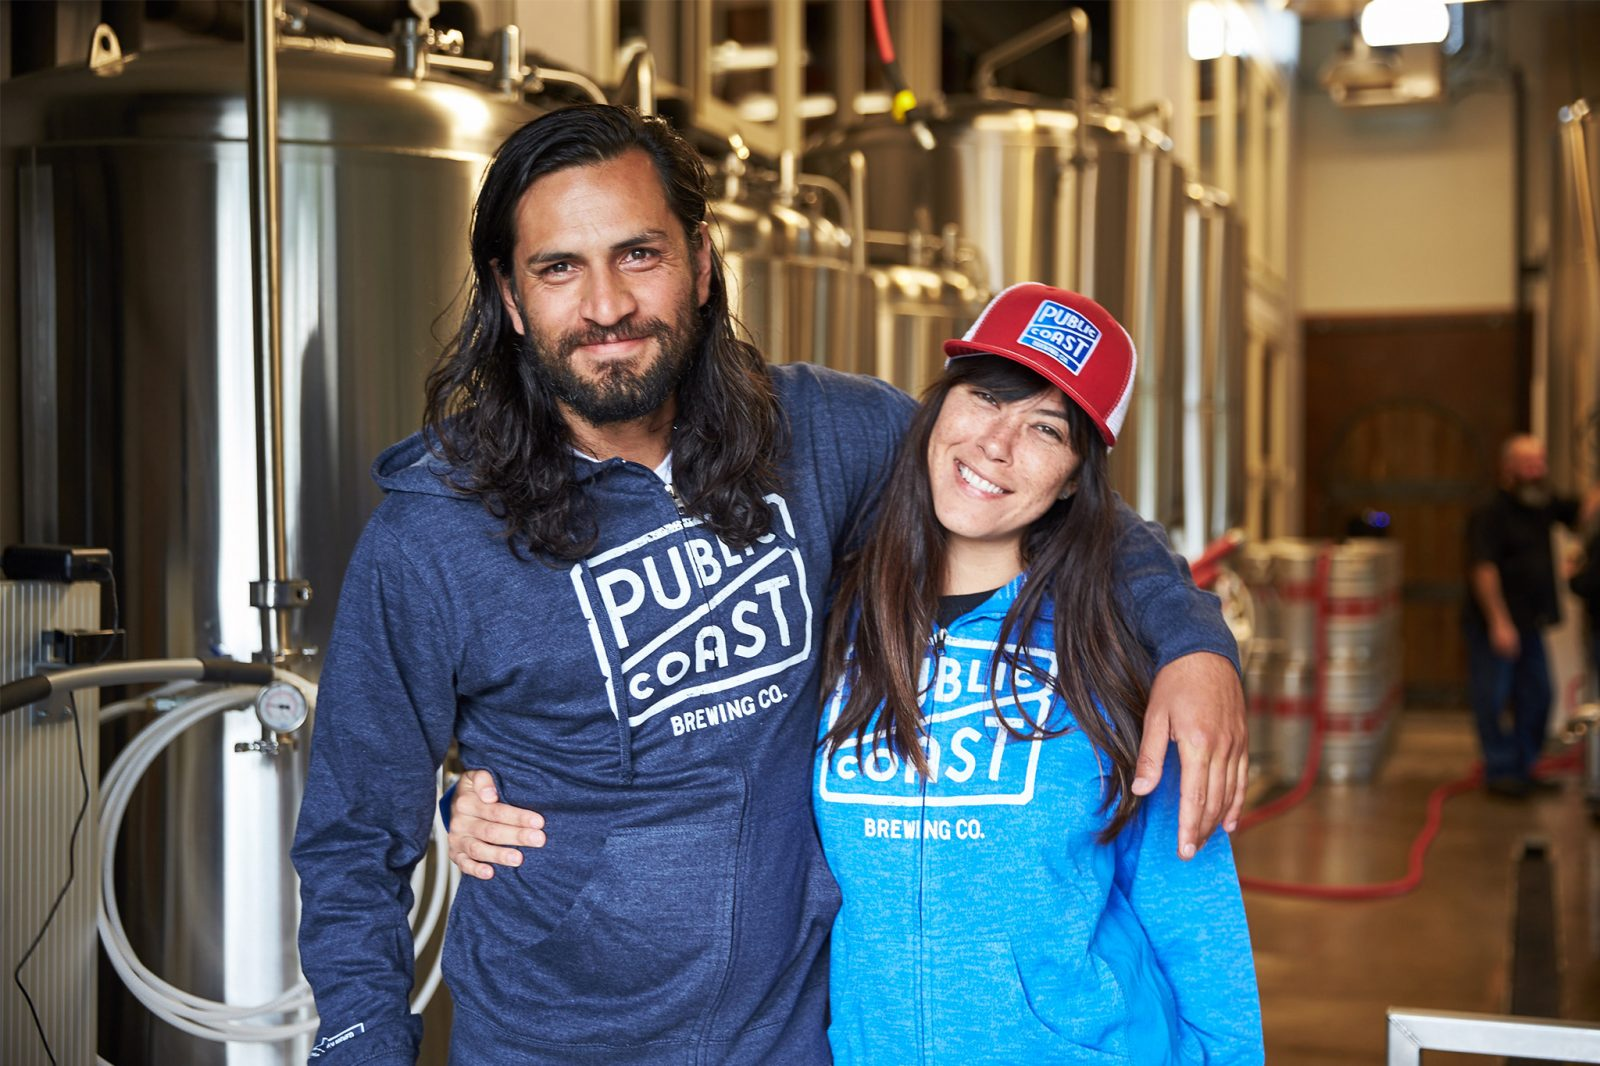 Public Coast Brewing Co. Gear